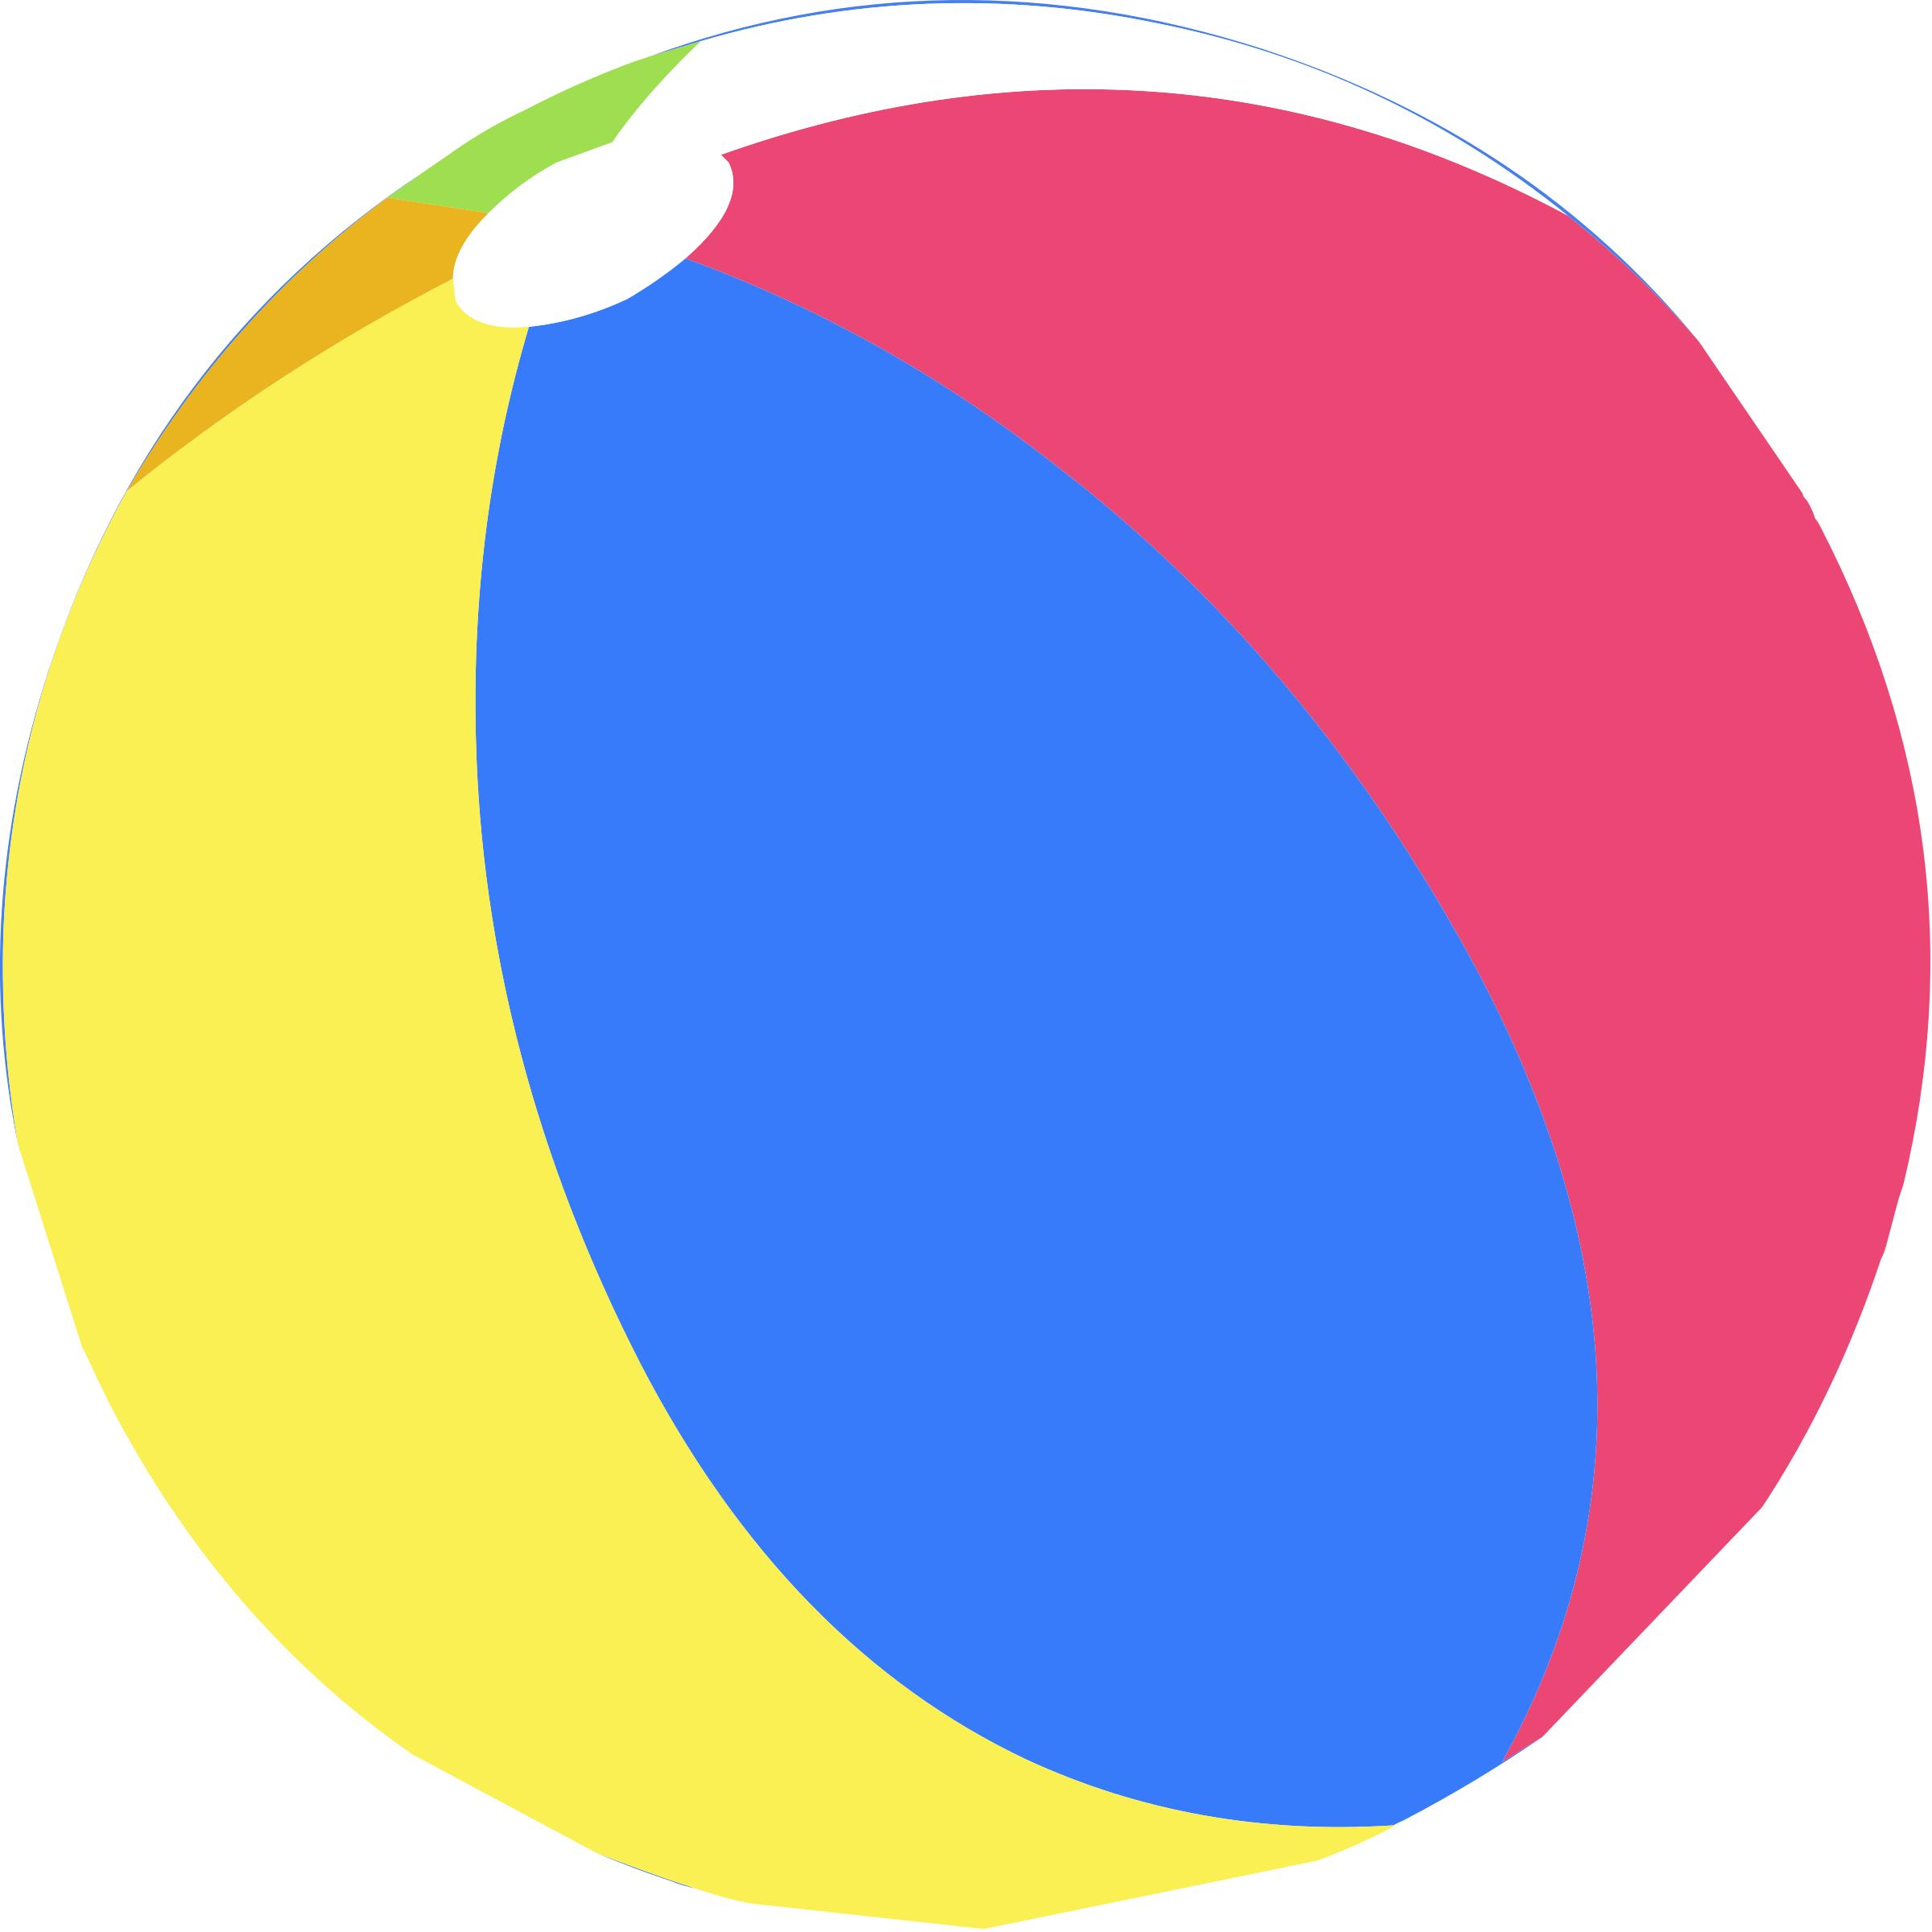 Beachball clipart tool. Misc icons png free